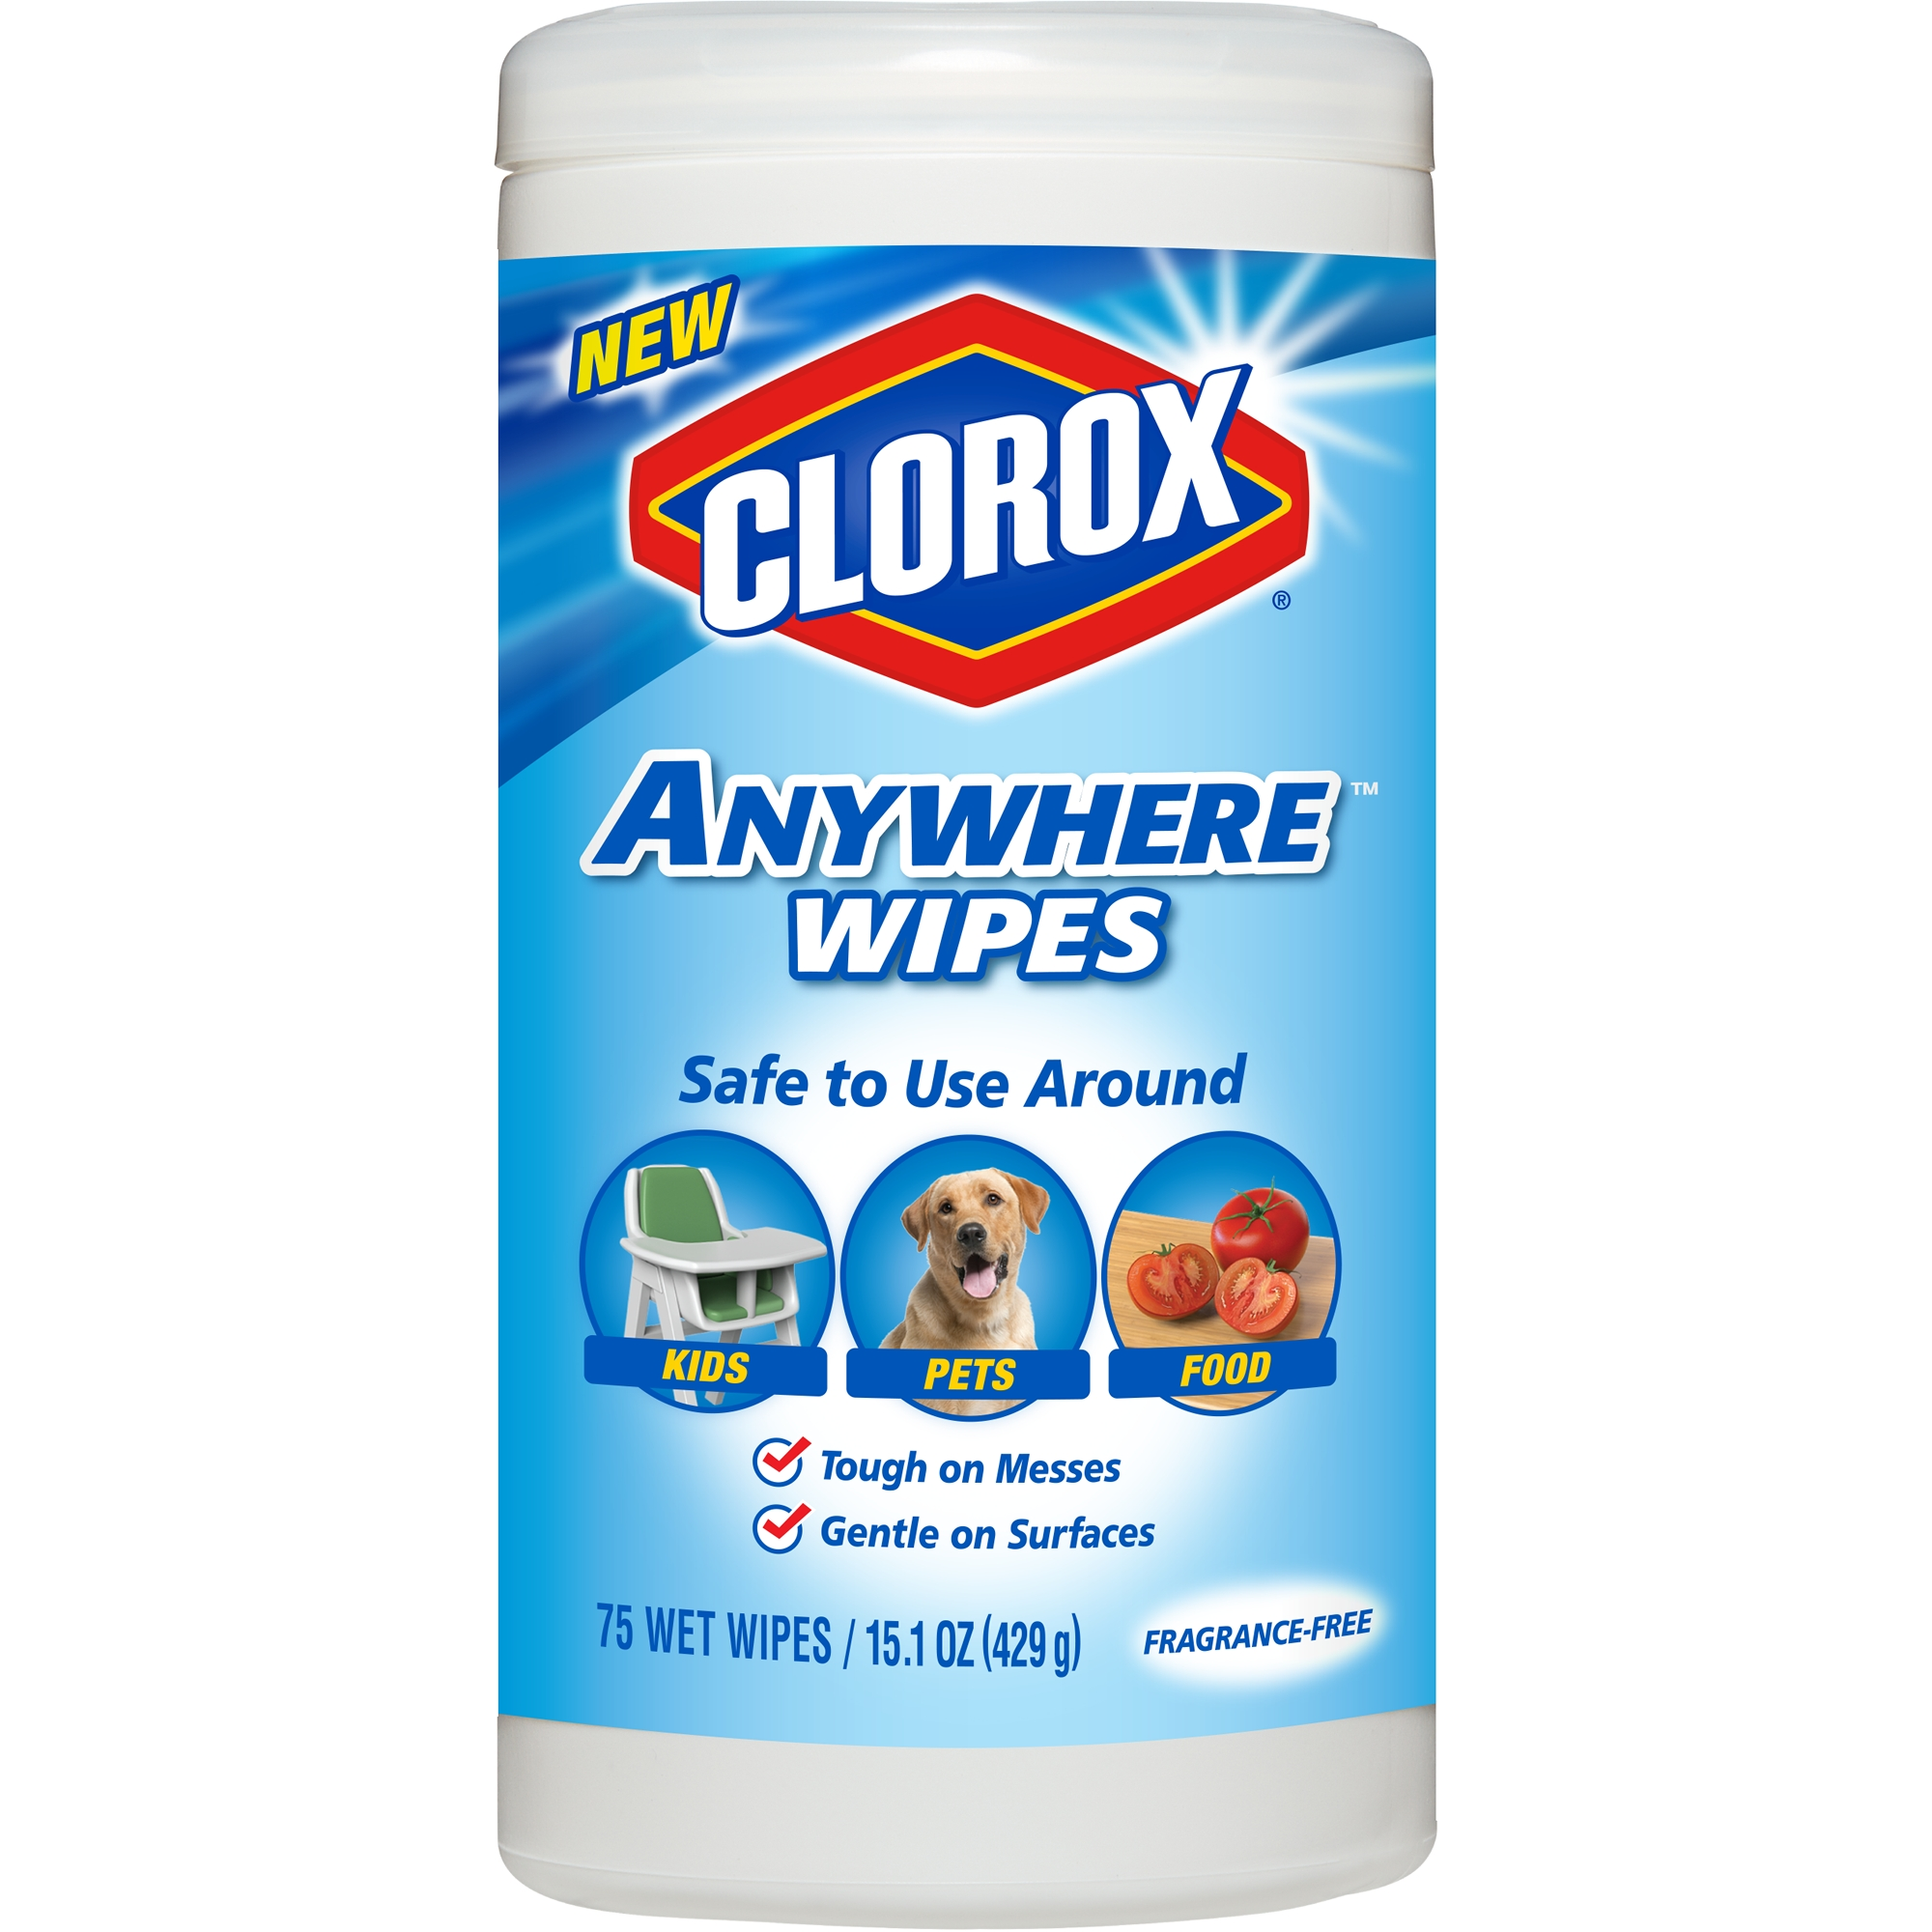 Clorox Anywhere Wipes, Fragrance-Free, 75 ct